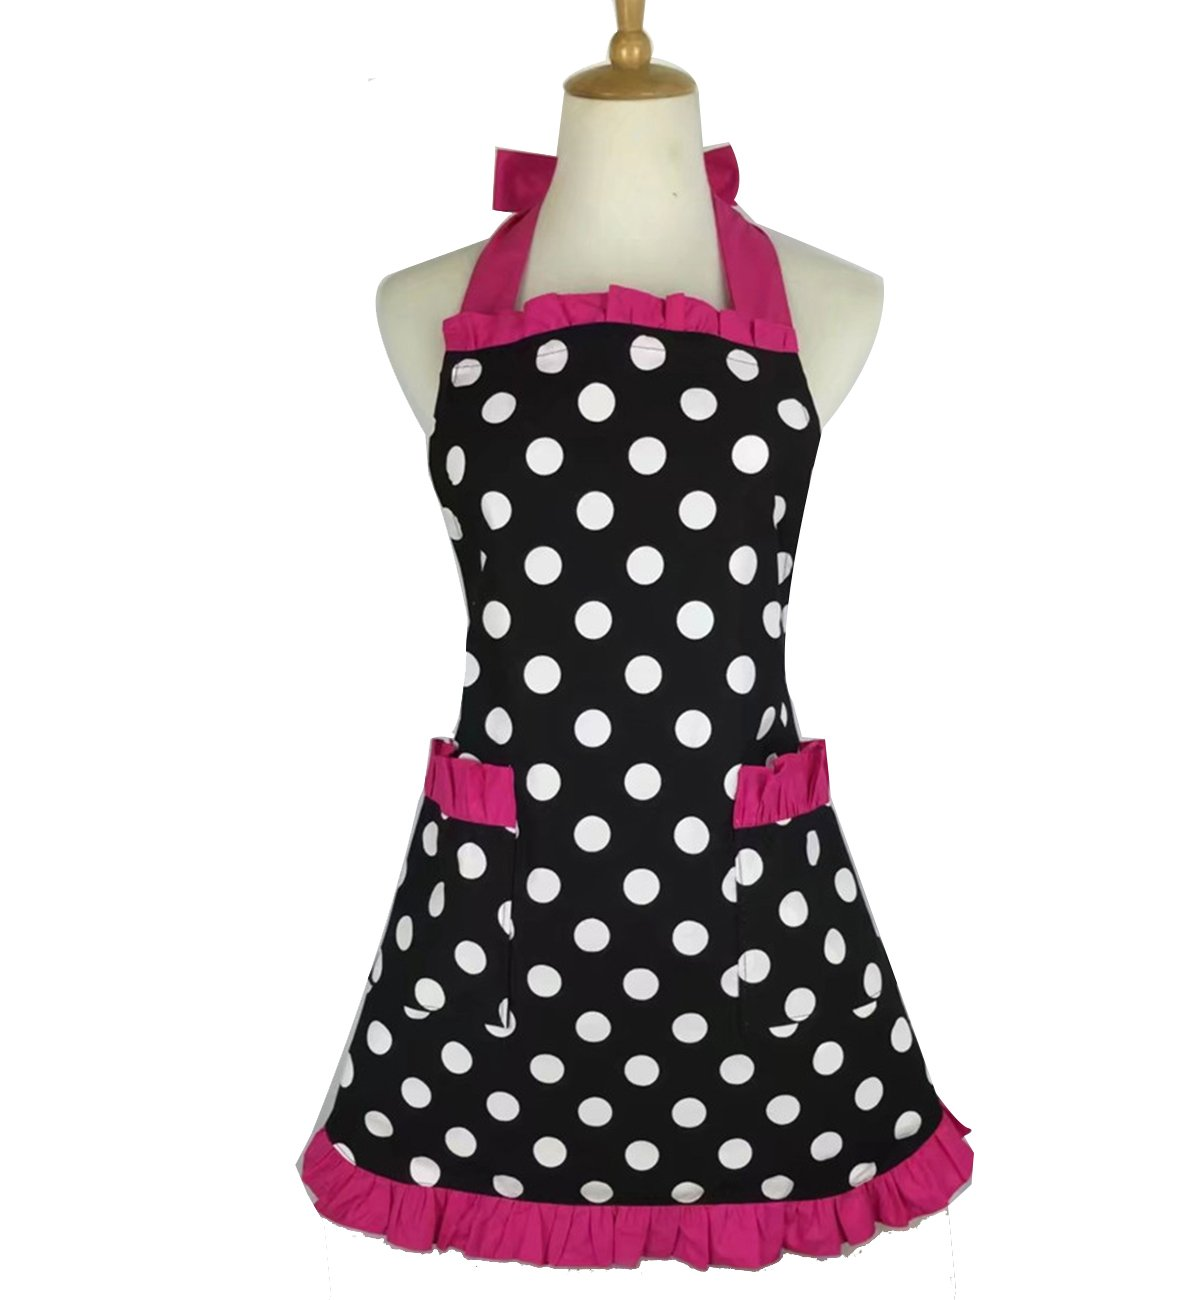 ... Lovely Personalized Apron Stylish Retro Lacy Vintage Flirty Maid Polka  Dot Cooking Kitchen Working Adjustable Apron with Pockets for Women Ladies ( Rose)